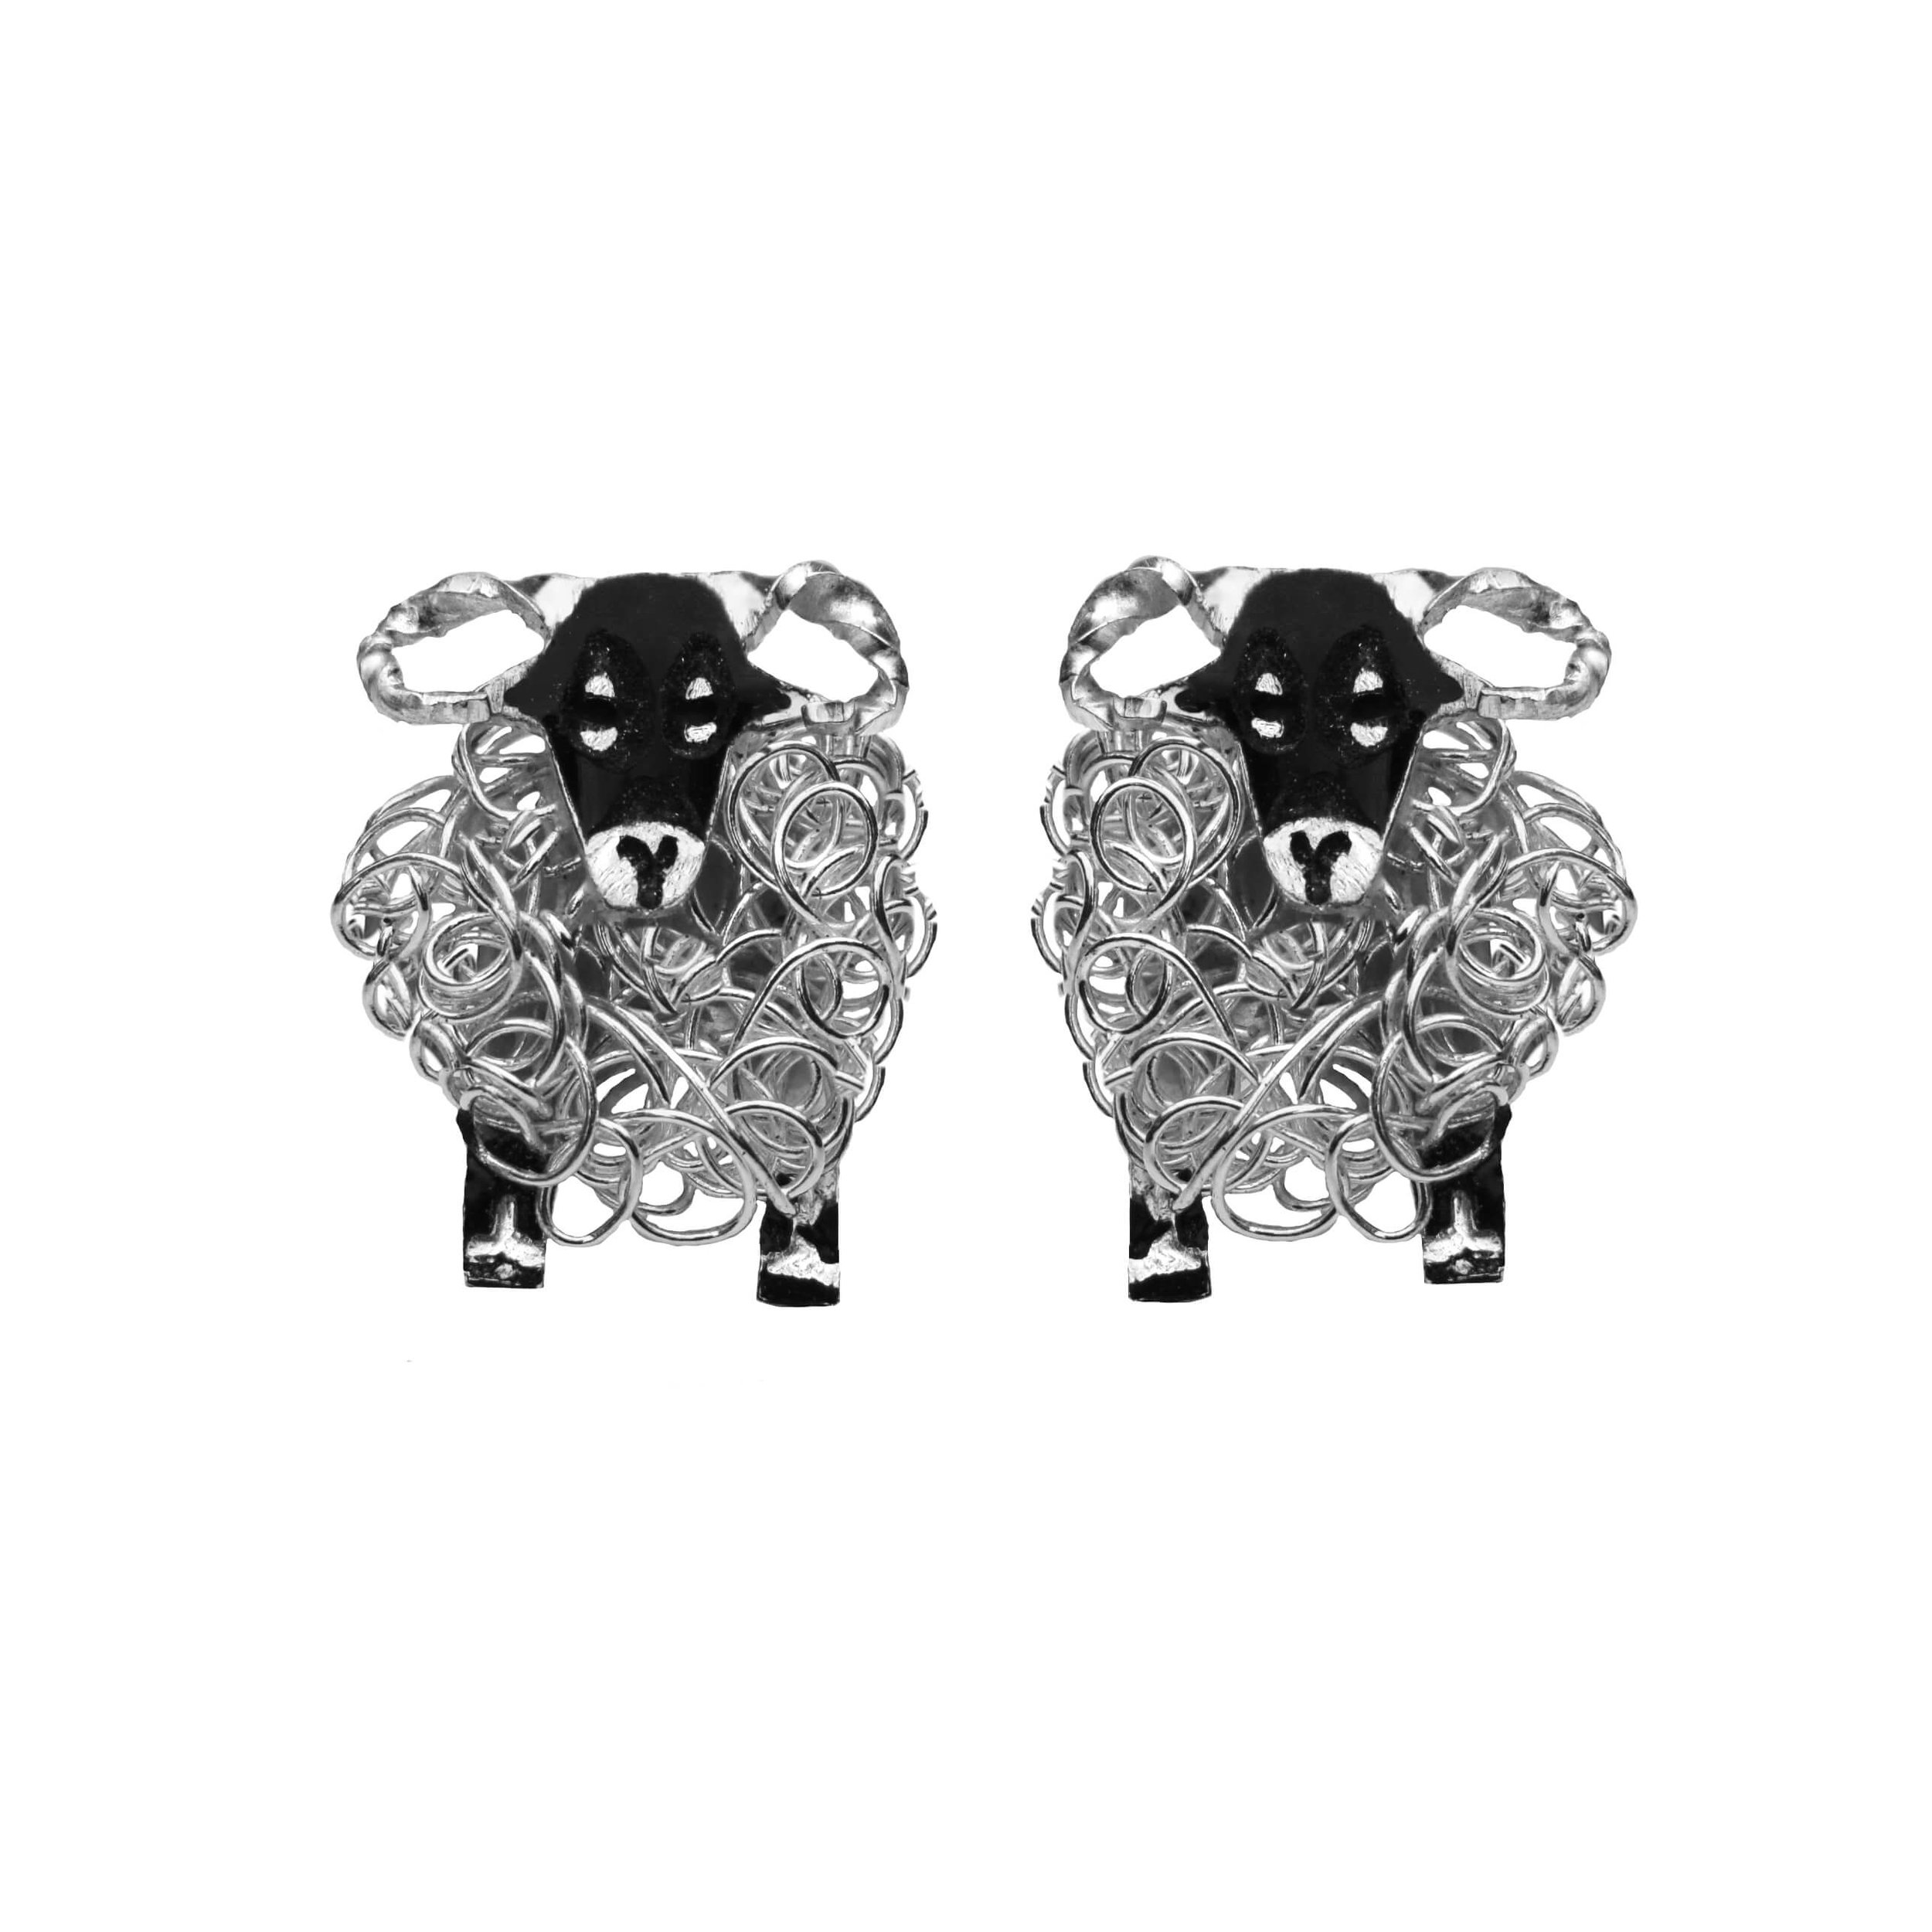 White Sheep Stud Earrings - Sterling Silver vxMzHs6E6Y